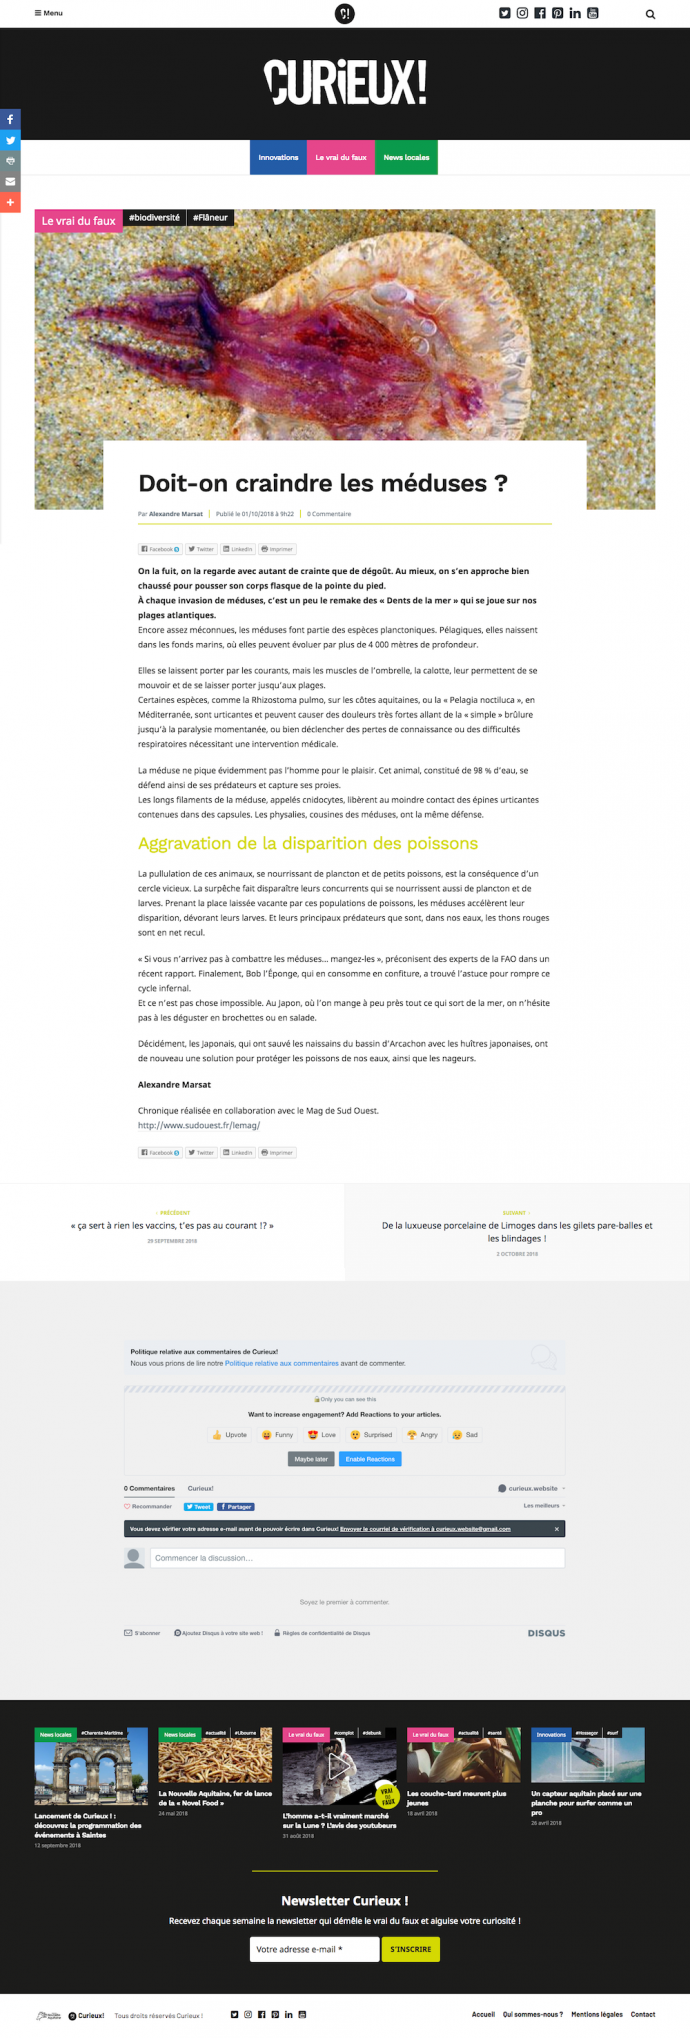 curieux projet wordpress article